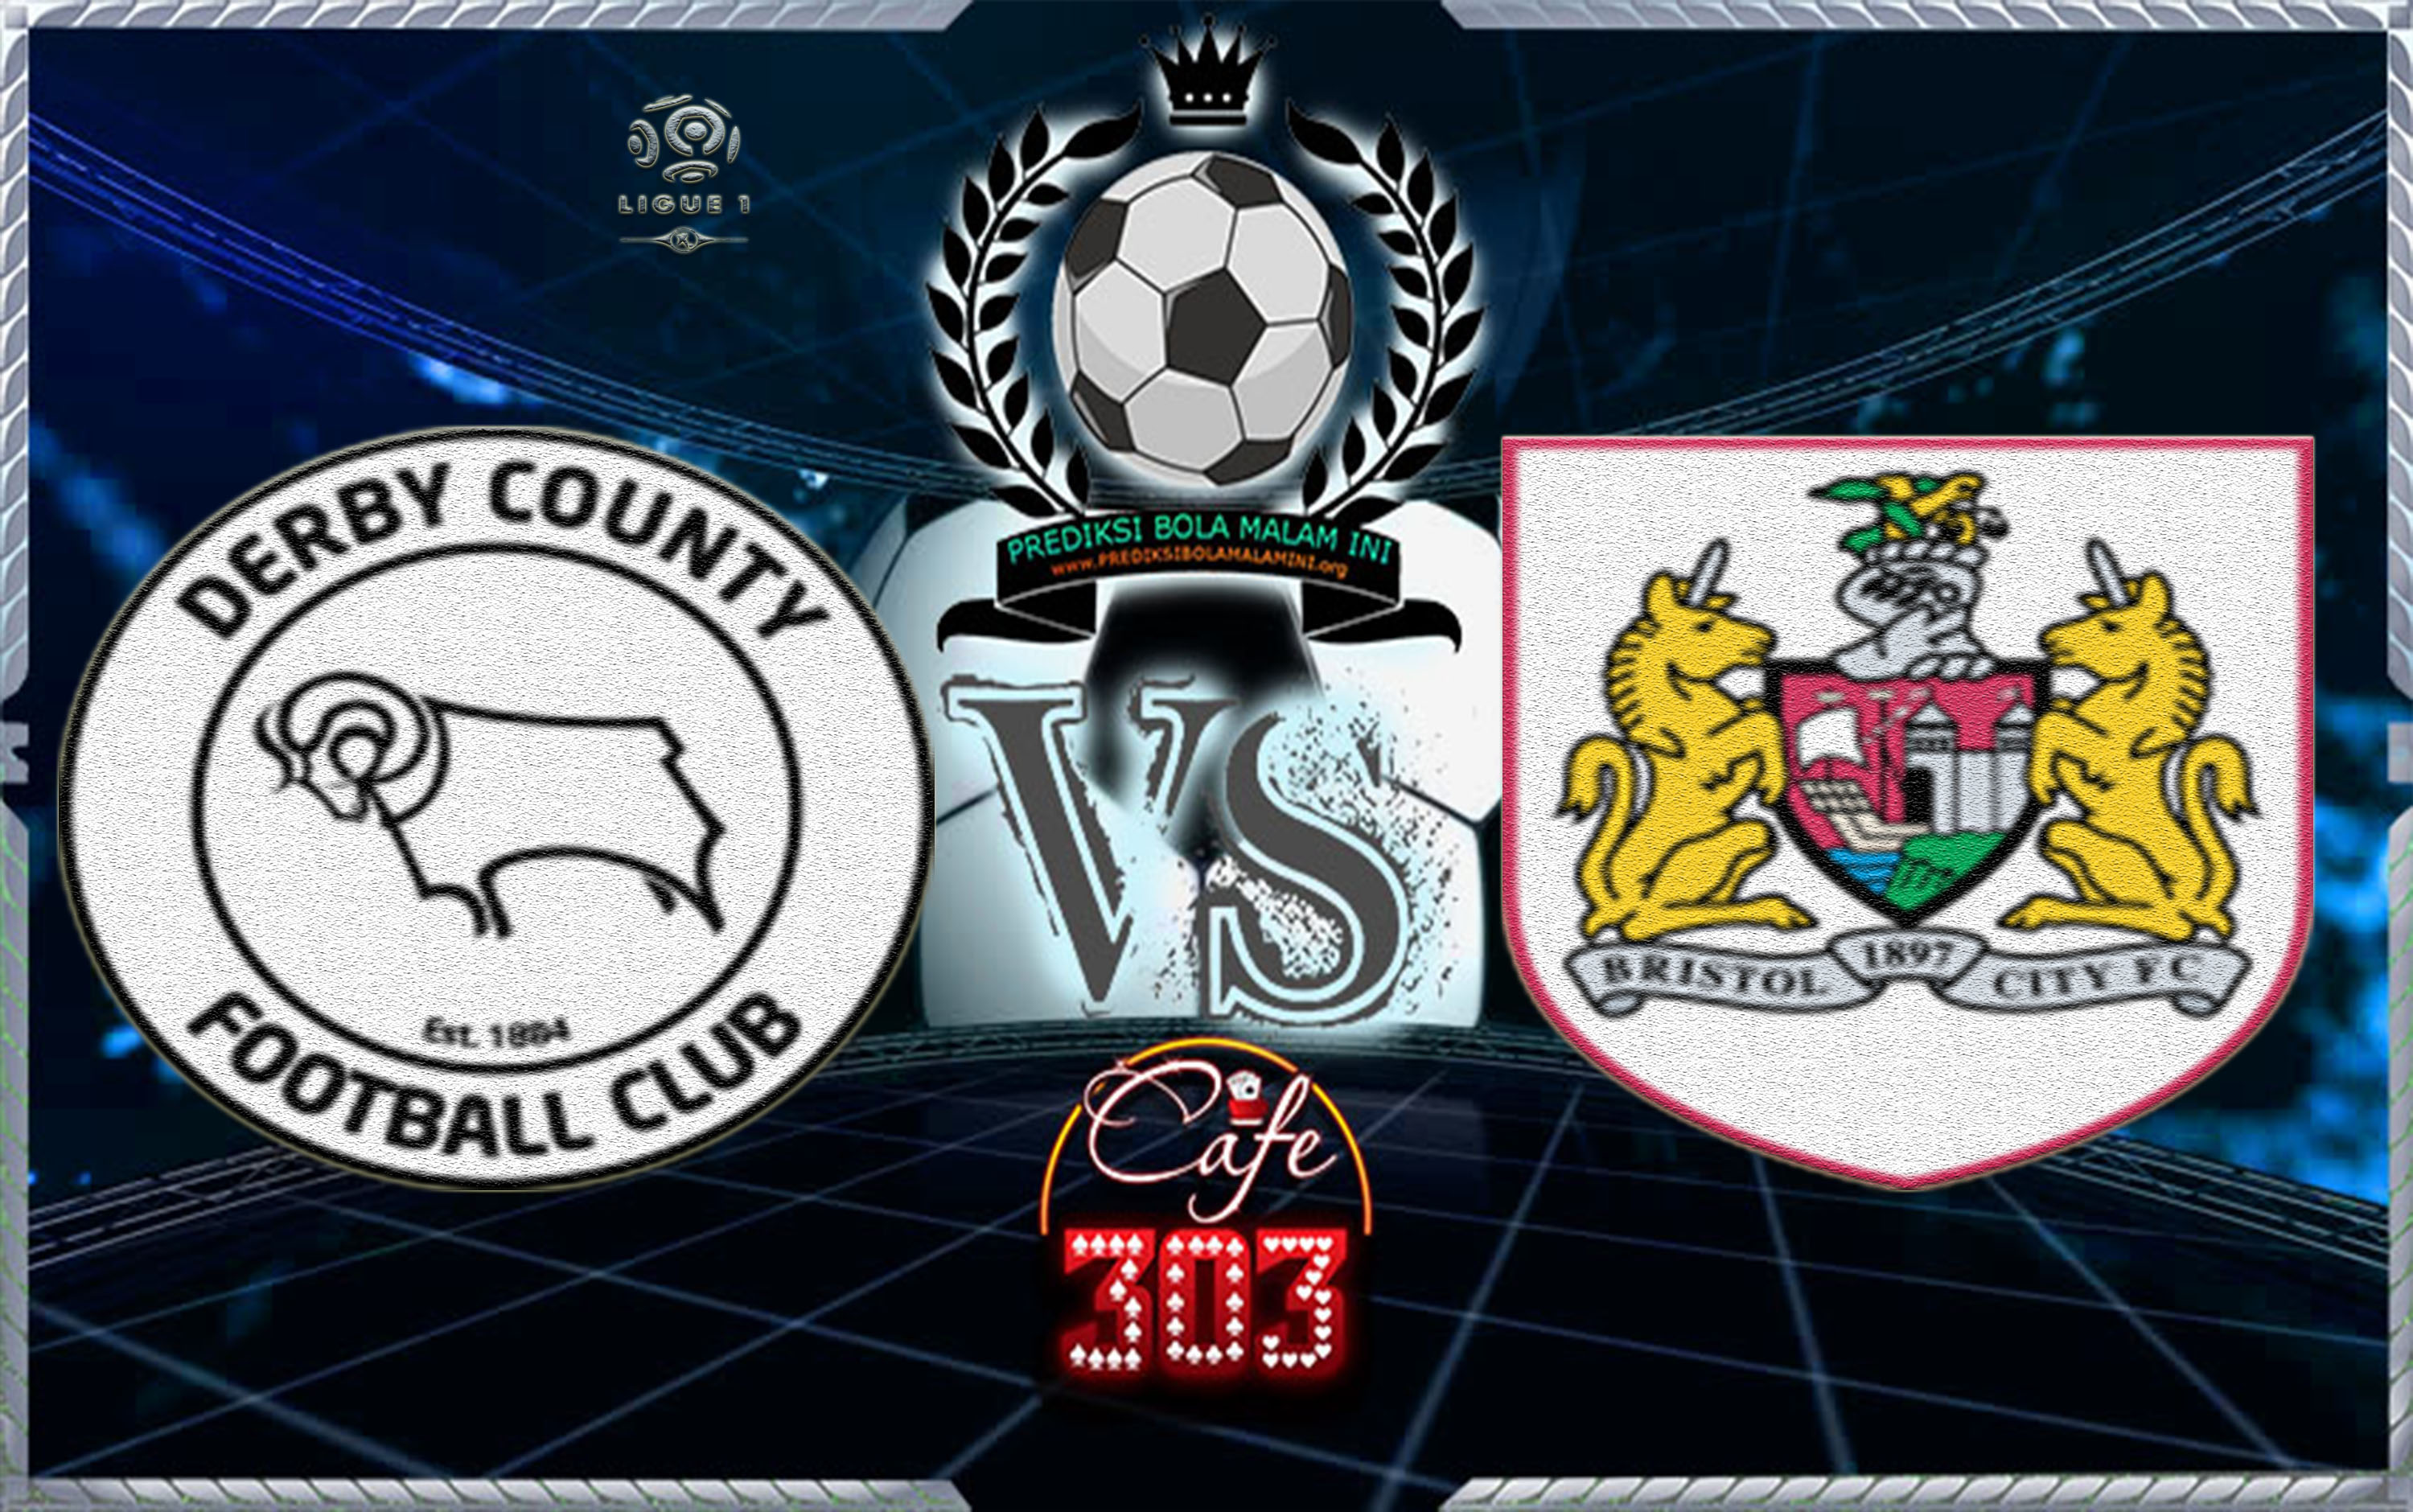 Derby County Vs Bristol &quot;width =&quot; 640 &quot;height =&quot; 401 &quot;/&gt; NTY Vs BRISTOL CITY, Bursa Taruhan DERBY COUNTY Vs BRISTOL CITY, Prediksi Skor DERBY COUNTY Vs BRISTOL CITY, Prediksi Pertandingan DERBY COUNTY vs BRISTOL CITY, Hasil Skor DERBY COUNTY vs BRISTOL CITY, DERBY COUNTY vs BRISTOL CITY </strong> </span> &#8211; yang akan di adakan pada tanggal 20 Januari 2018 Pada Pukul 02: 45 WIB Di Stadion iPro Stadium (Derby) </p> <p> <span style=